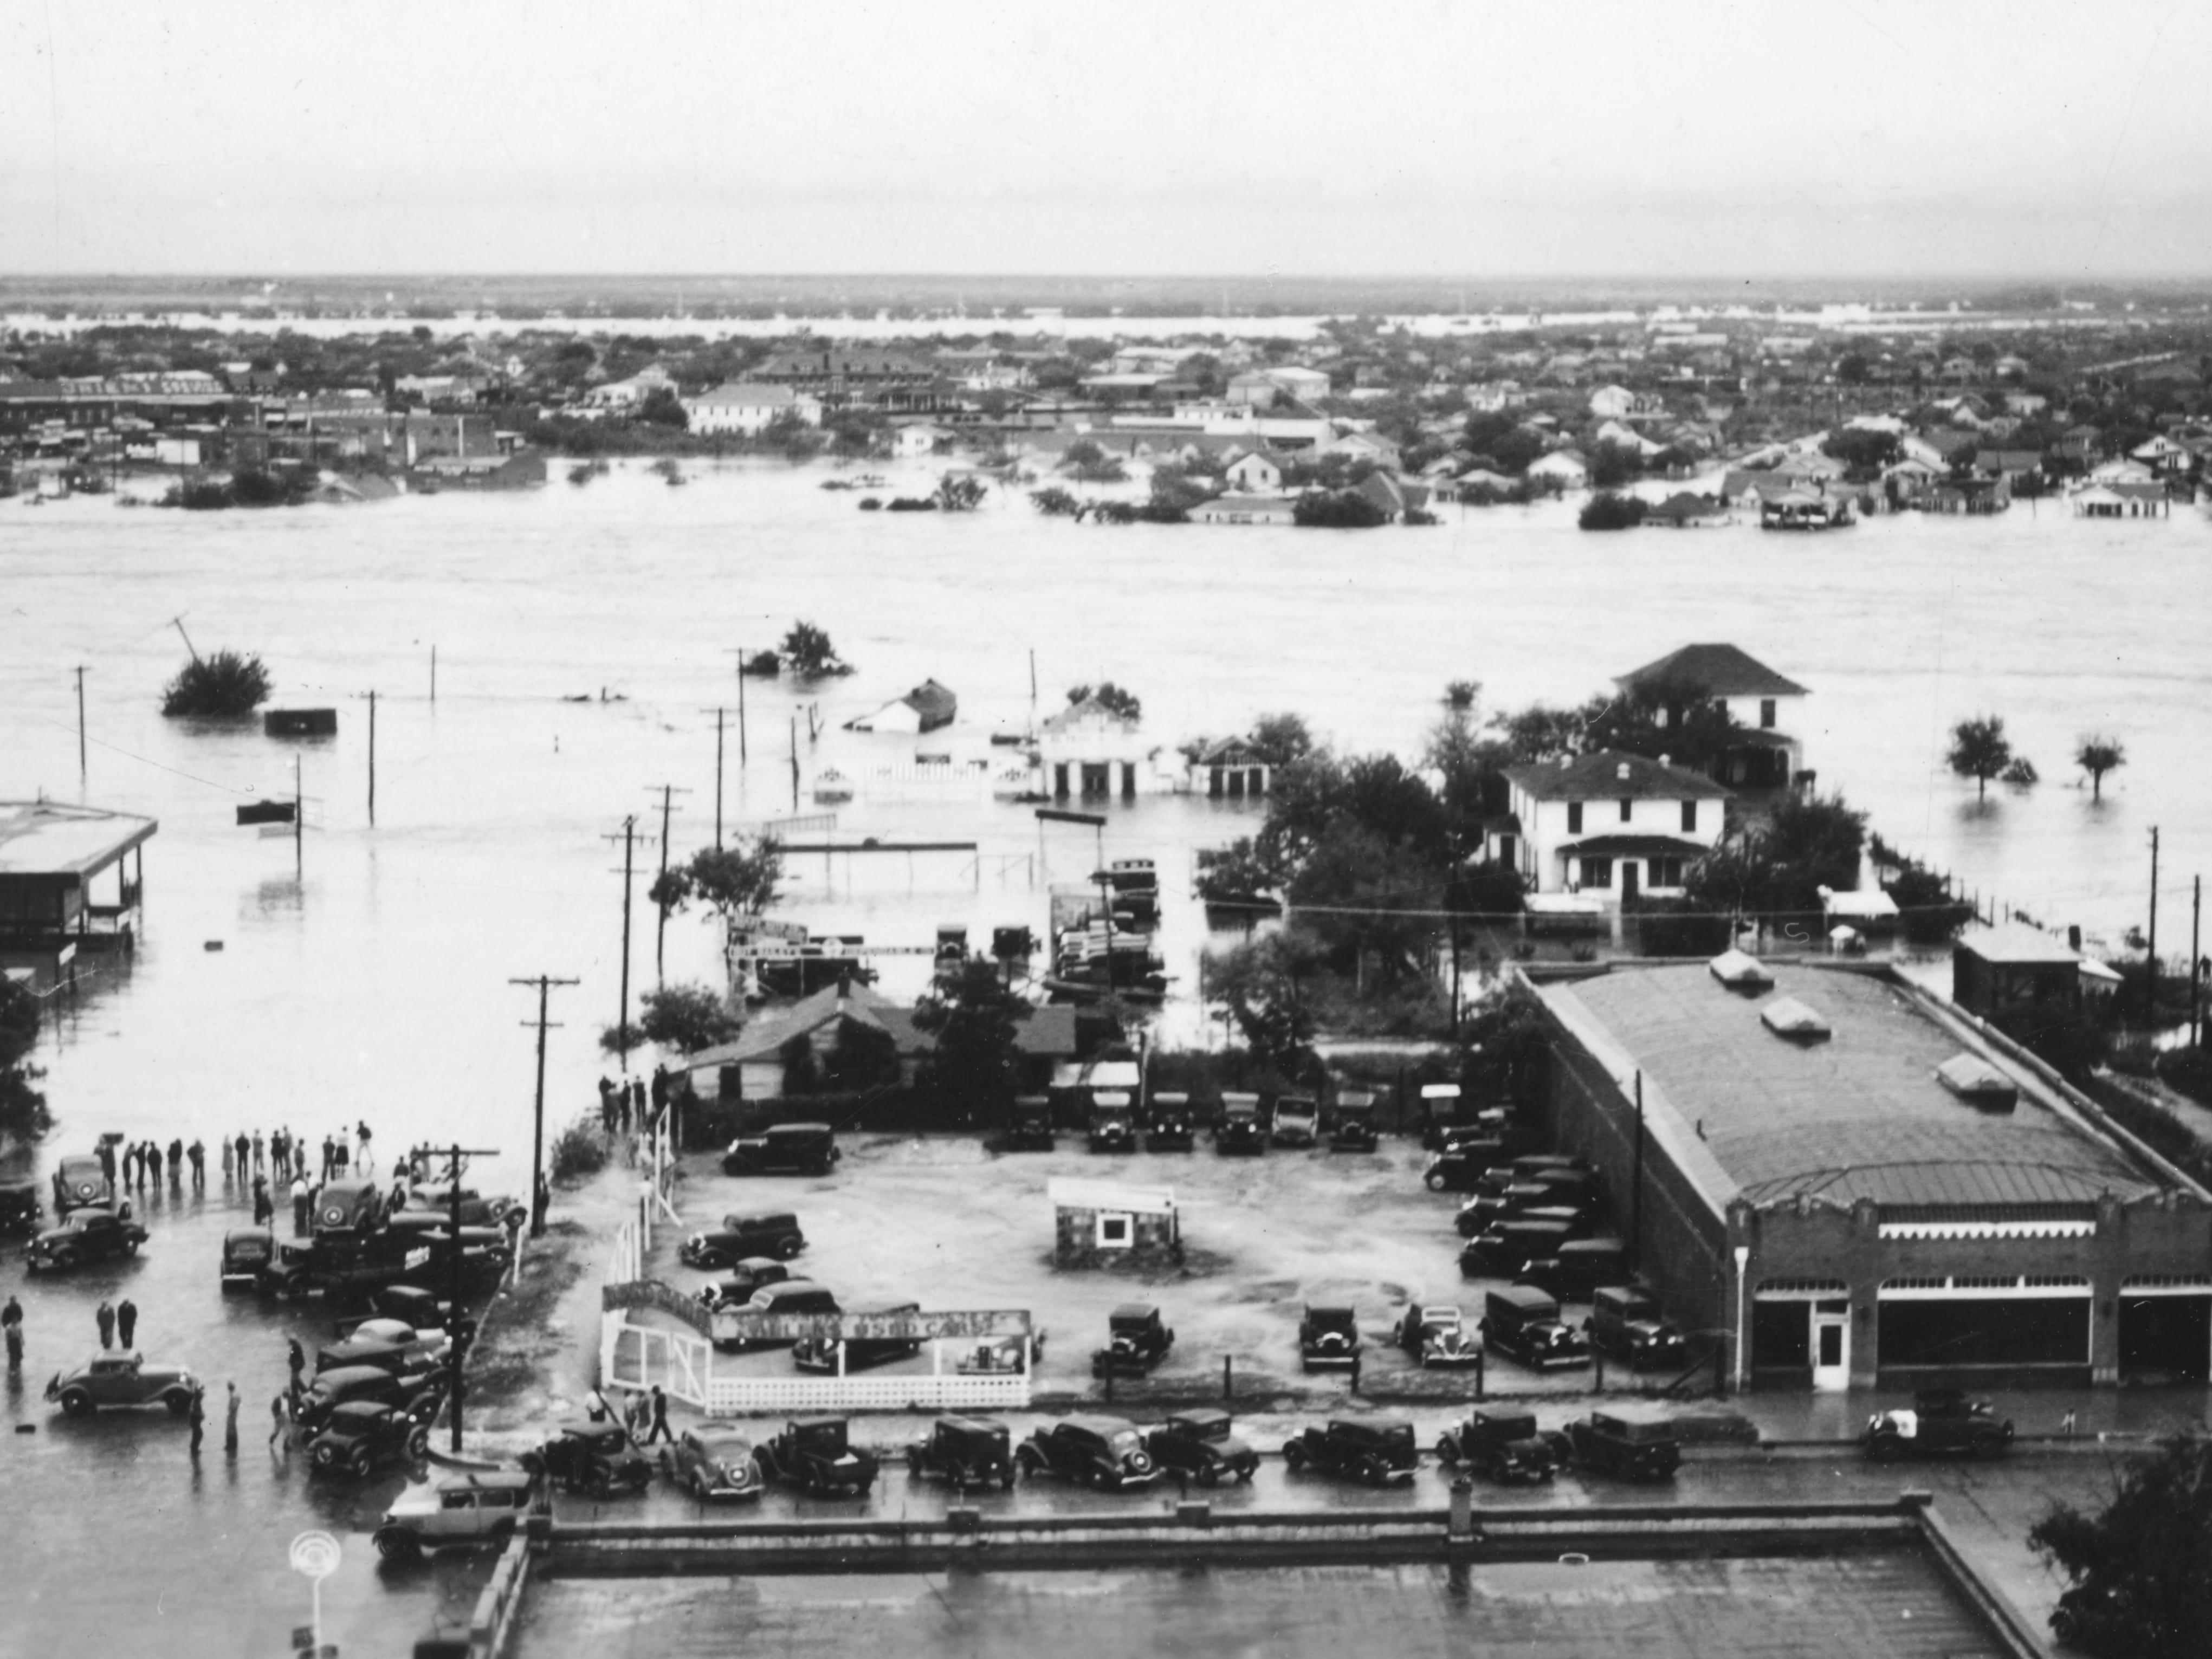 This picture views Irving Street from the McBurnett Building during the flood of 1936 in San Angelo.